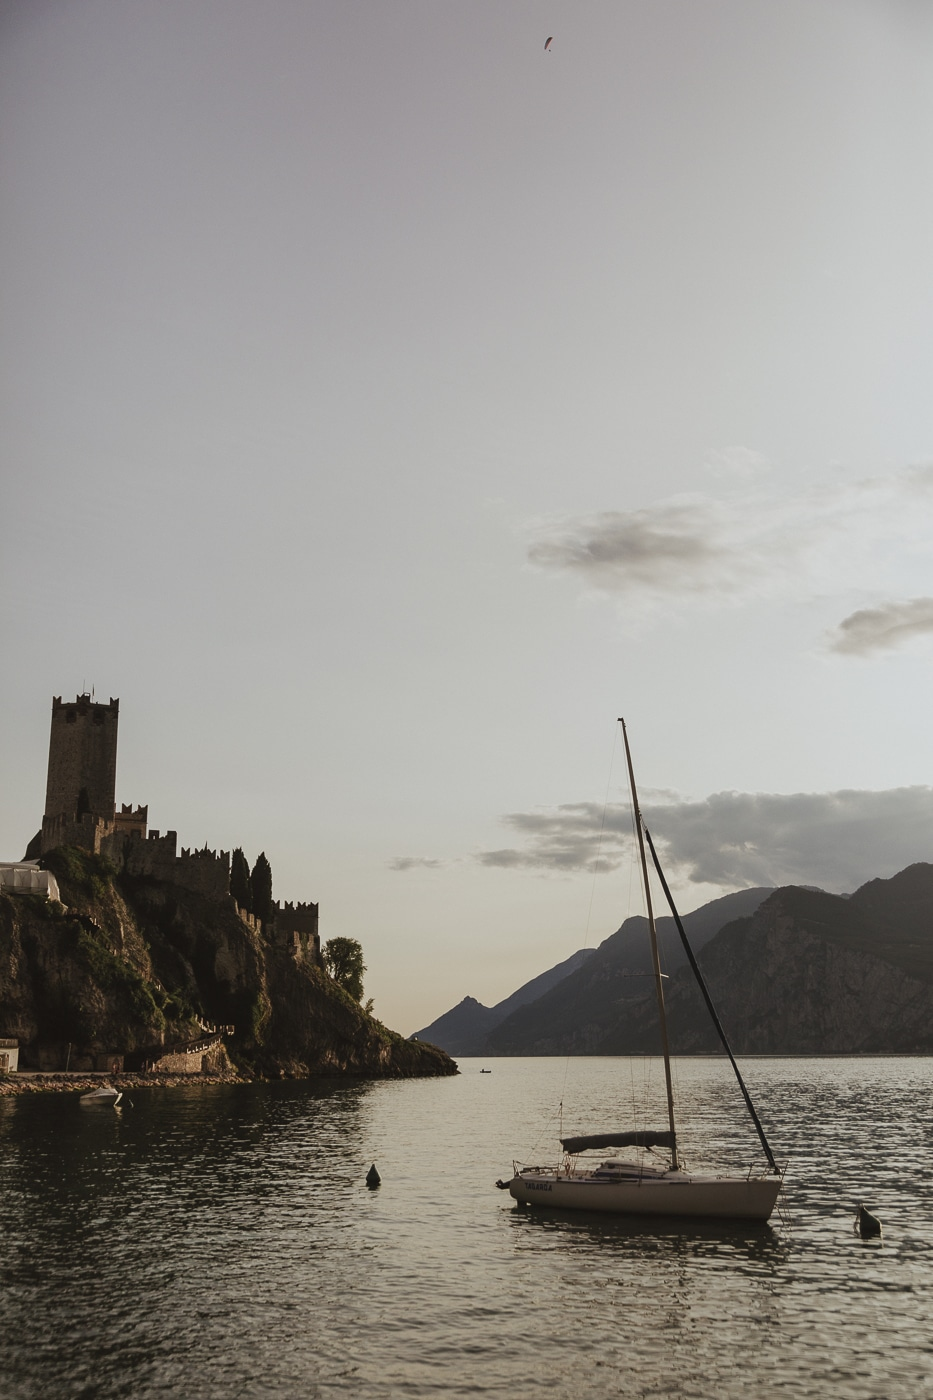 Castle on a cliff and floating white yacht on Lake Garda in Italy with mountains in the background and a grey cloudy sky